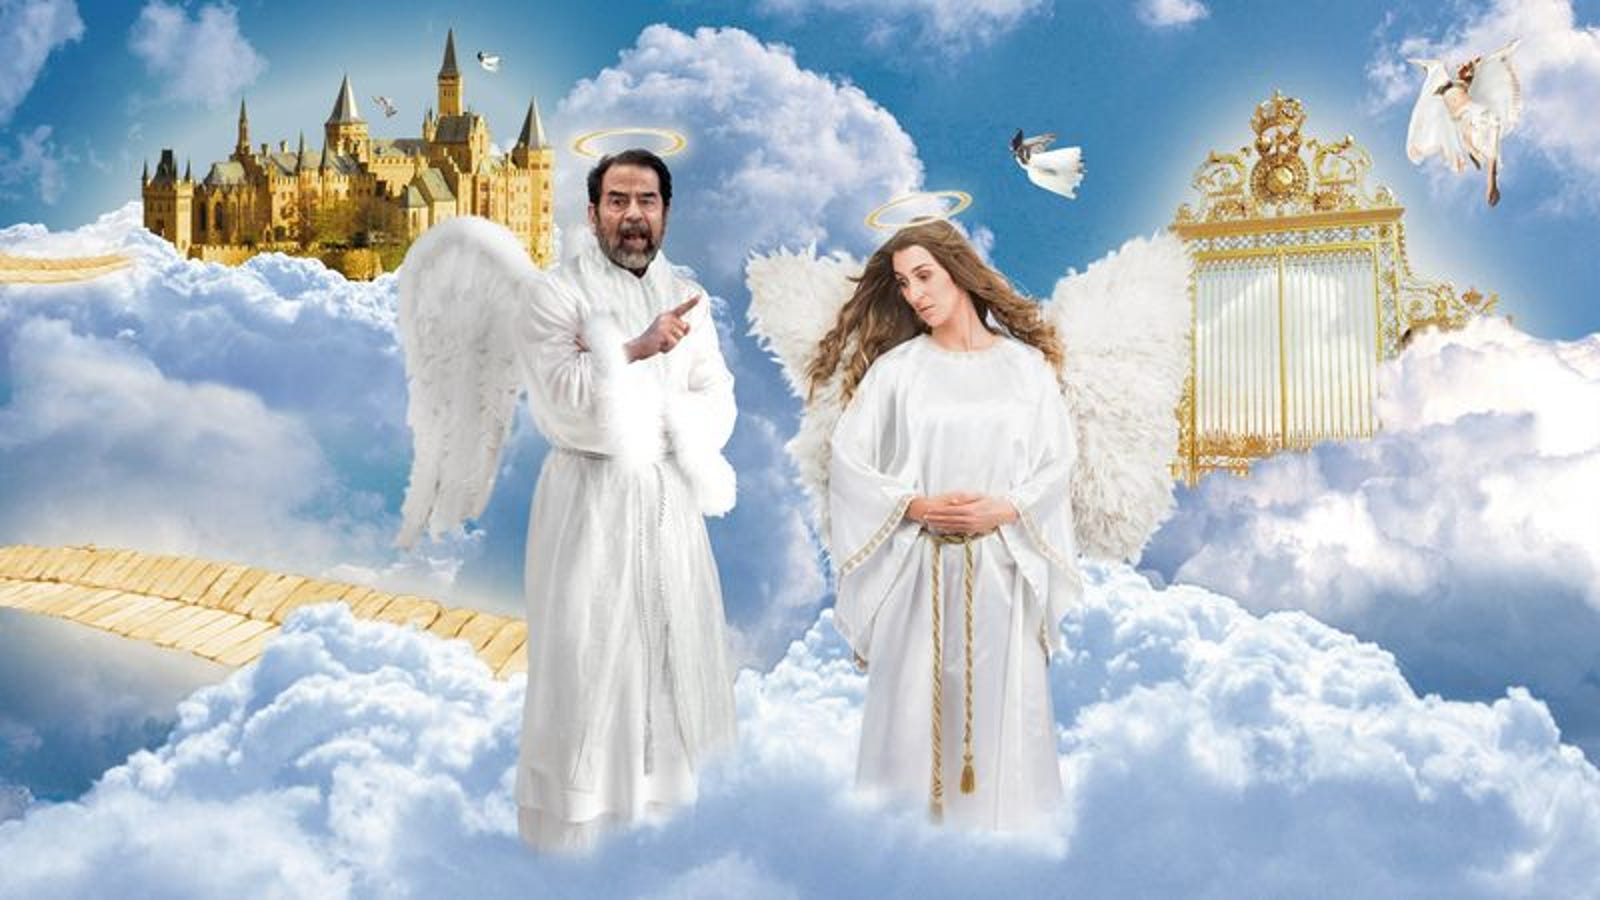 saddam hussein complaining to other angels about all the